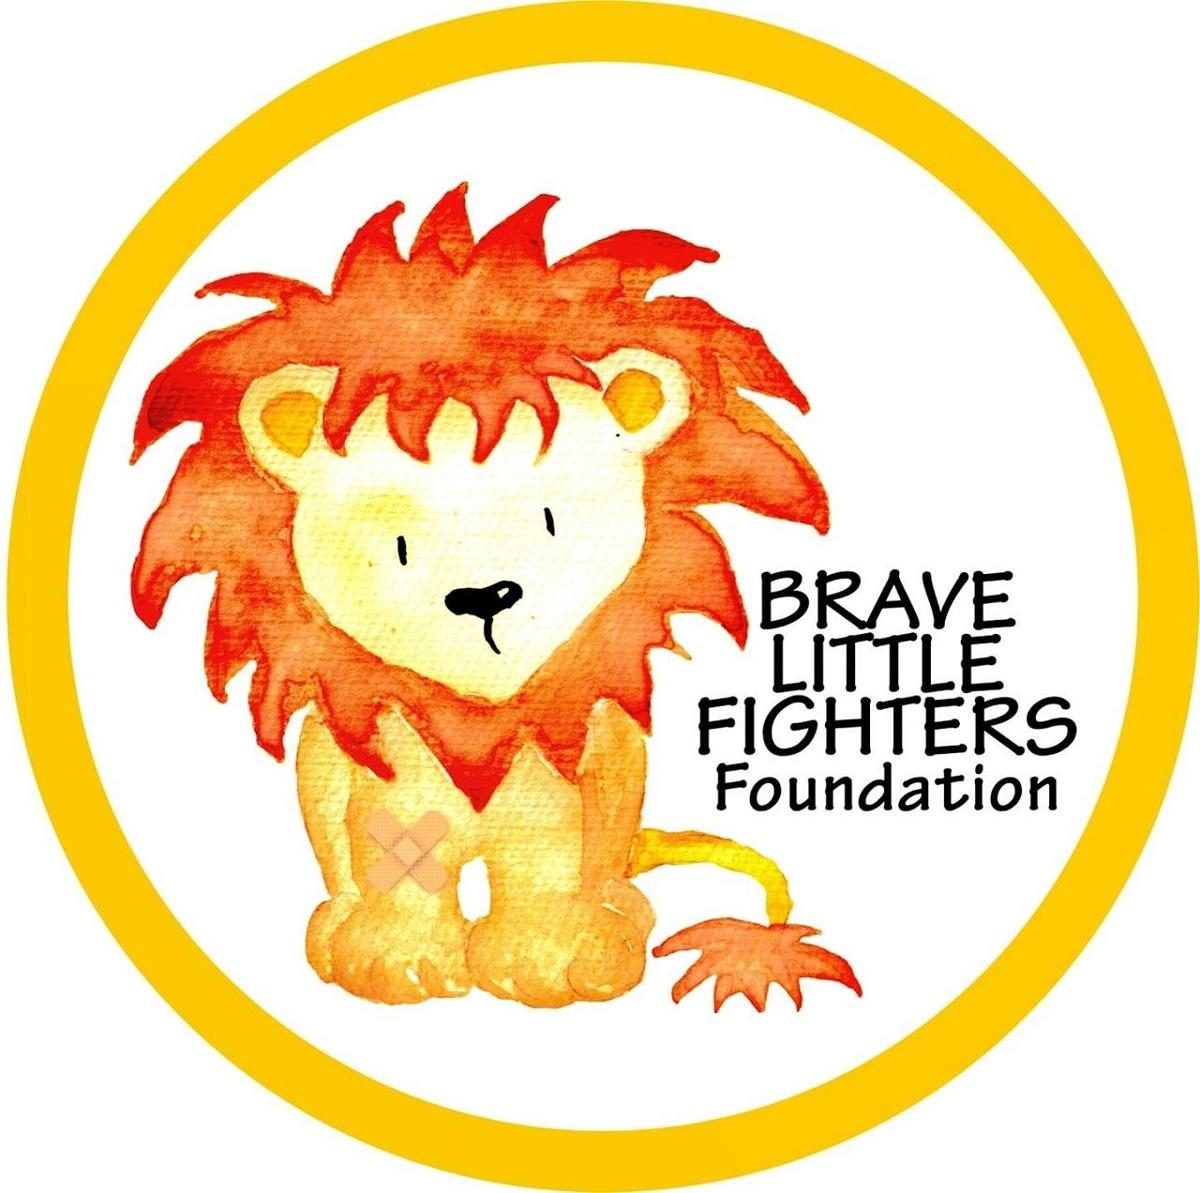 Brave-Little-Fighters-logo